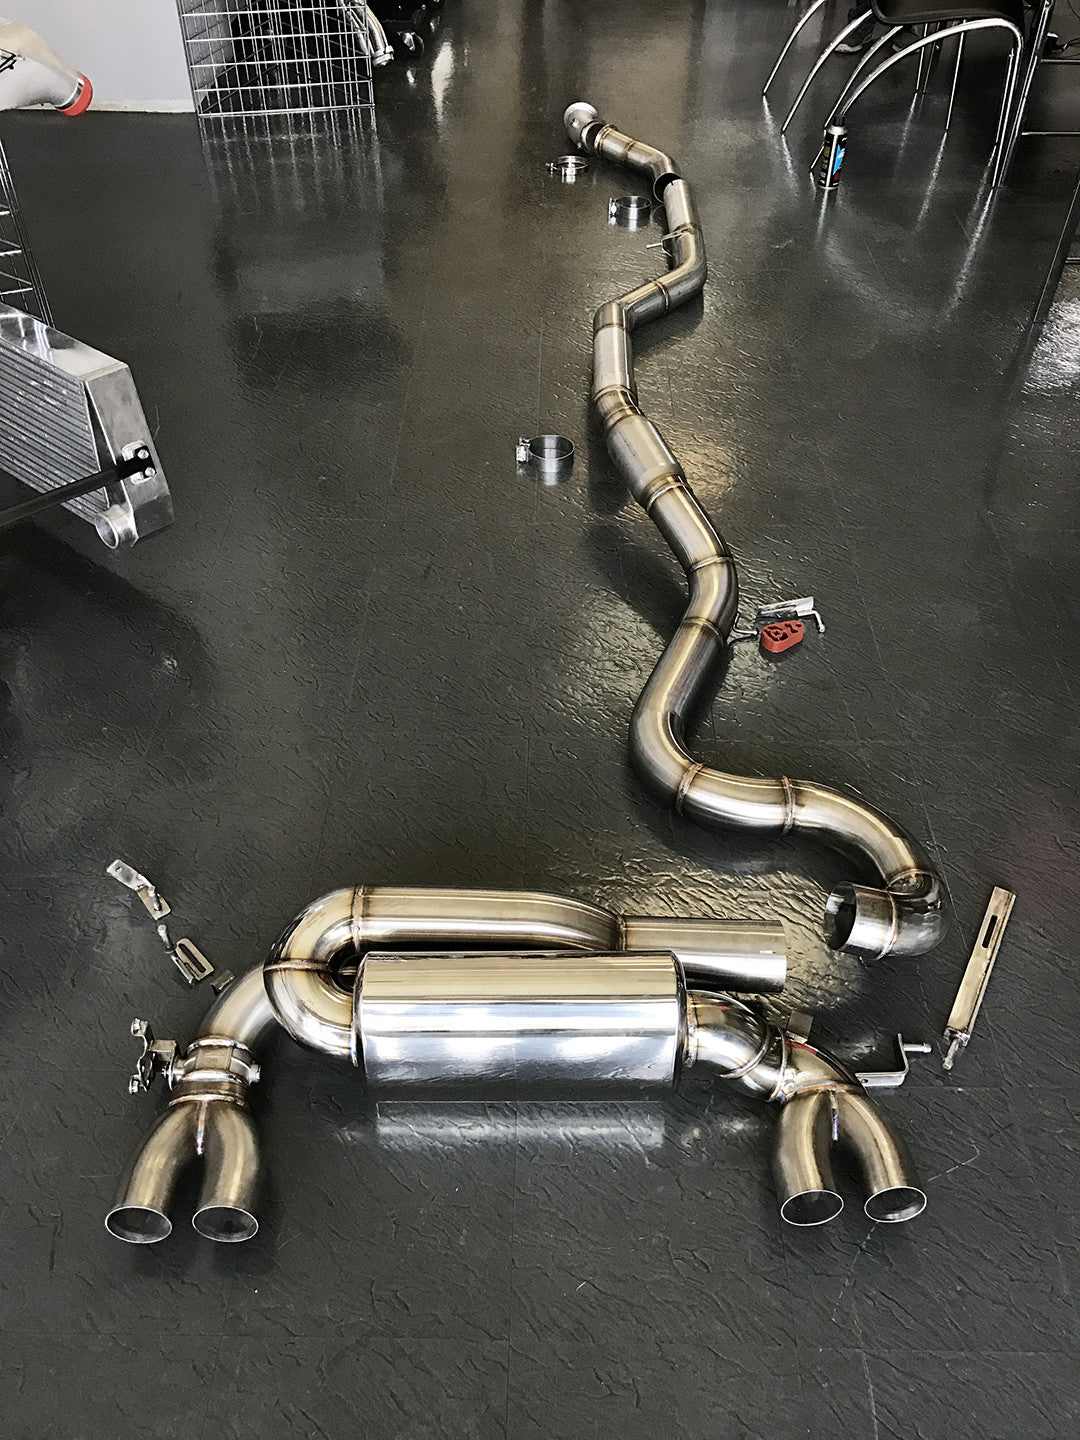 F87 M2 Signature Turbo-Back Exhaust System